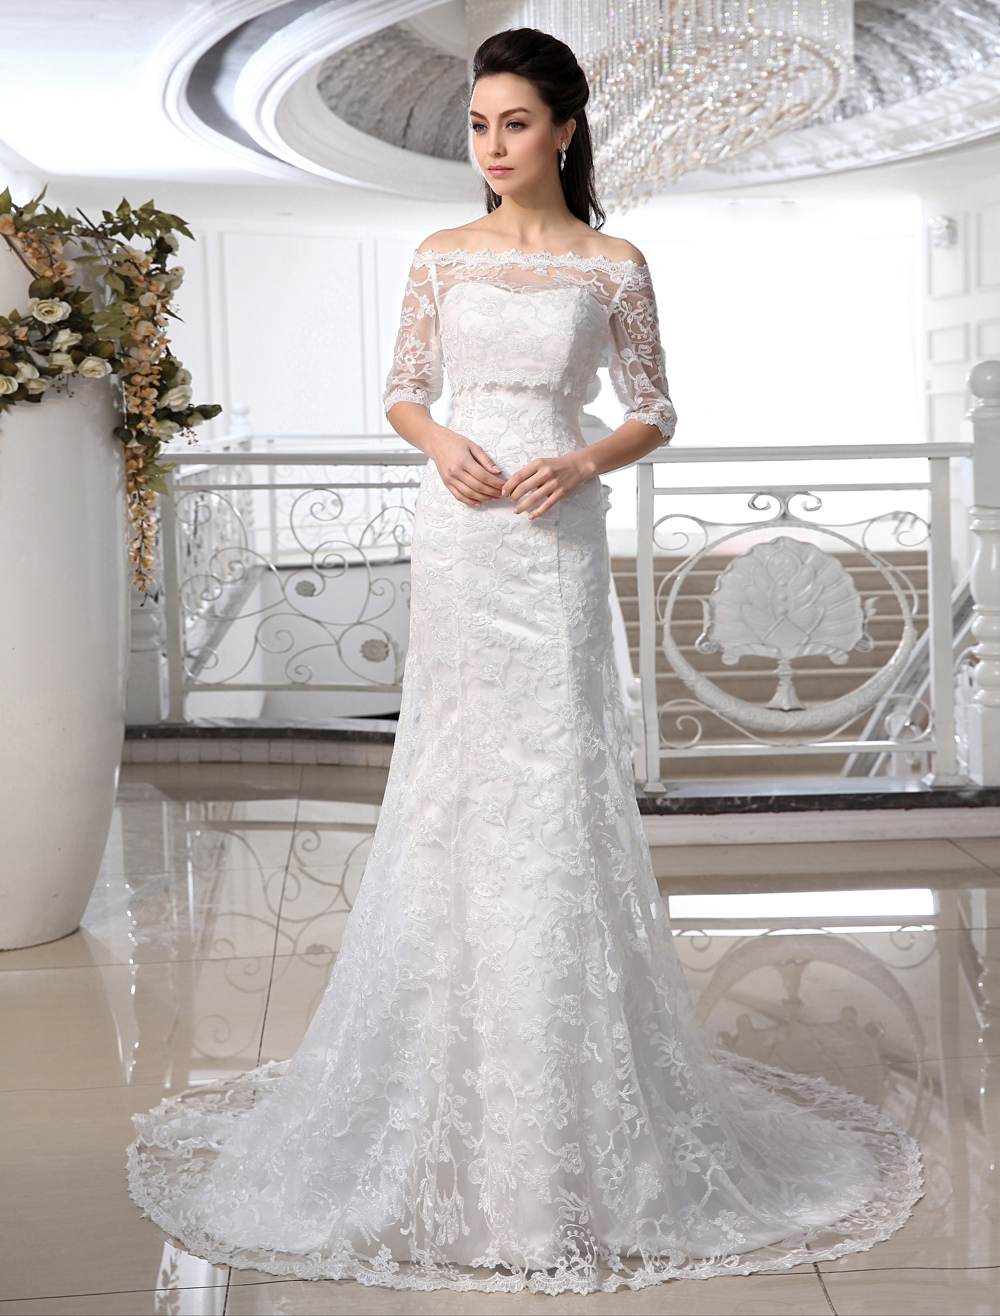 Ivory Wedding Dress Off-the-Shoulder Mermaid Lace Wedding Gown